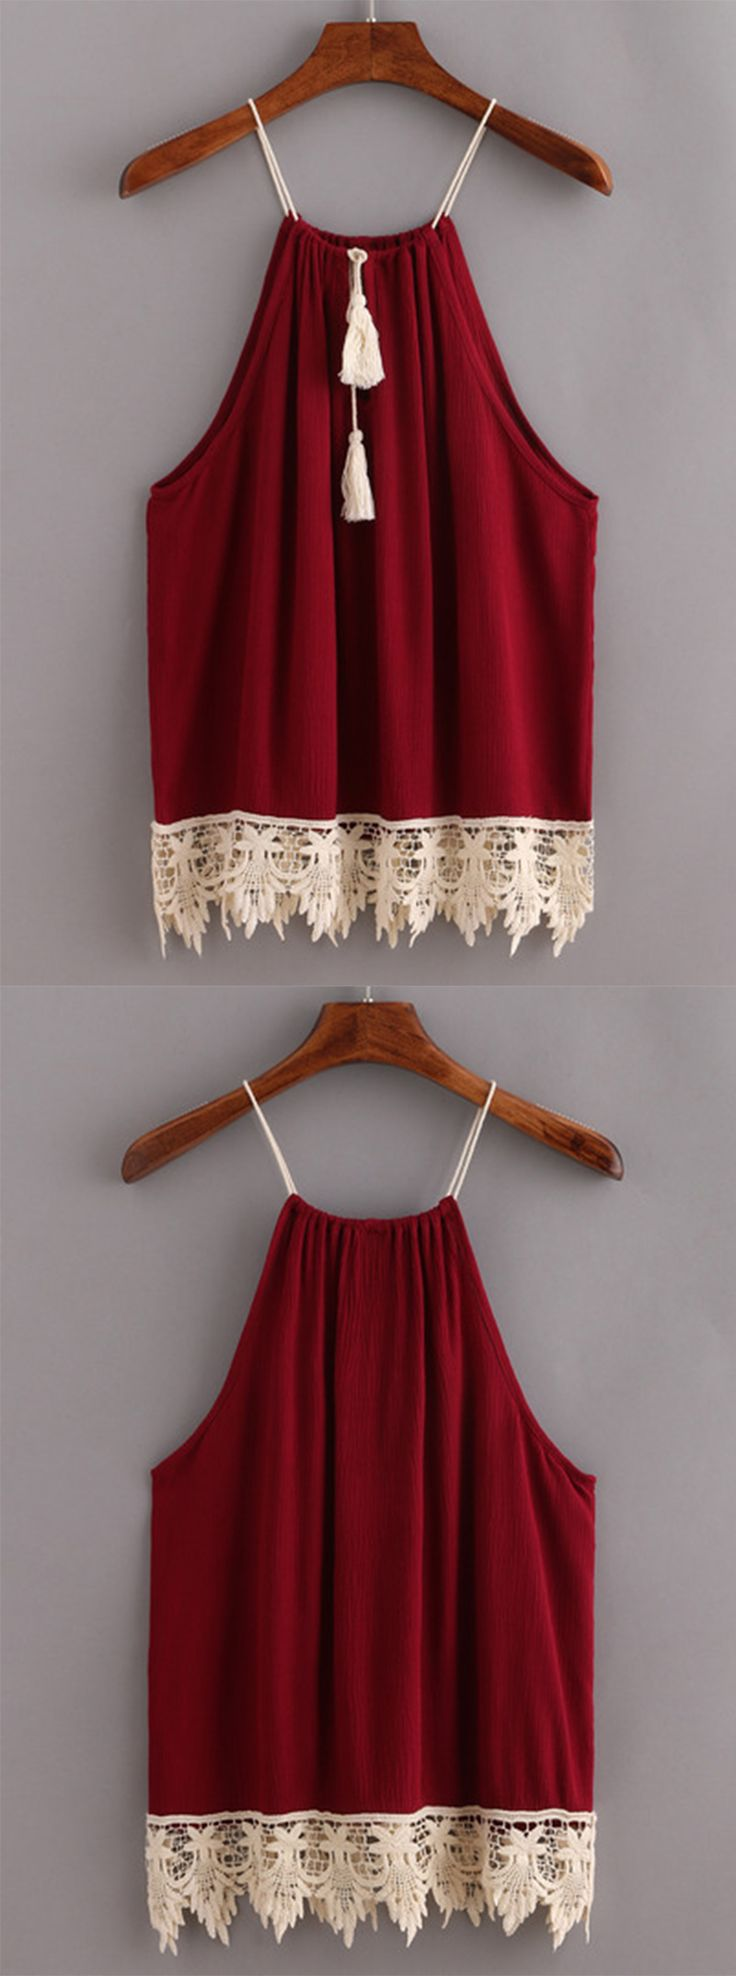 Lace Trimmed Tasselled Drawstring Neck Top - Burgandy